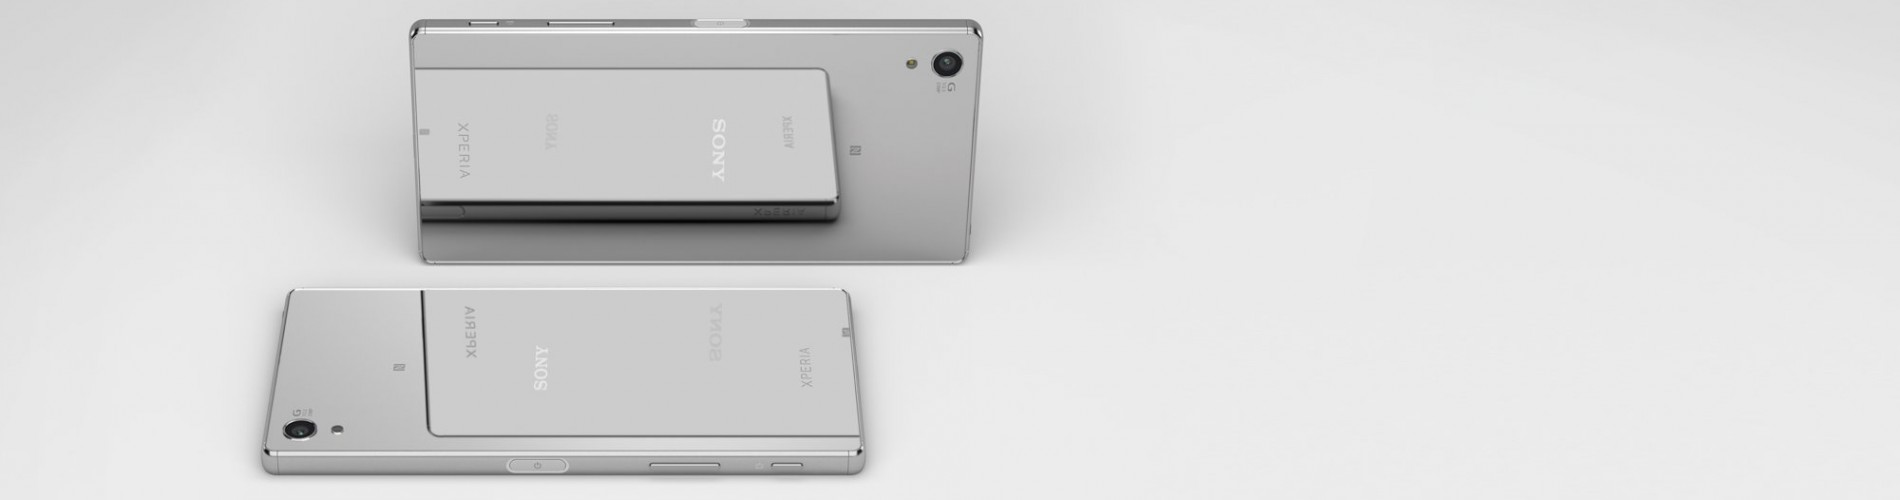 Sony adds Marshmallow resources and Xperia Z5 binaries to Open Device program